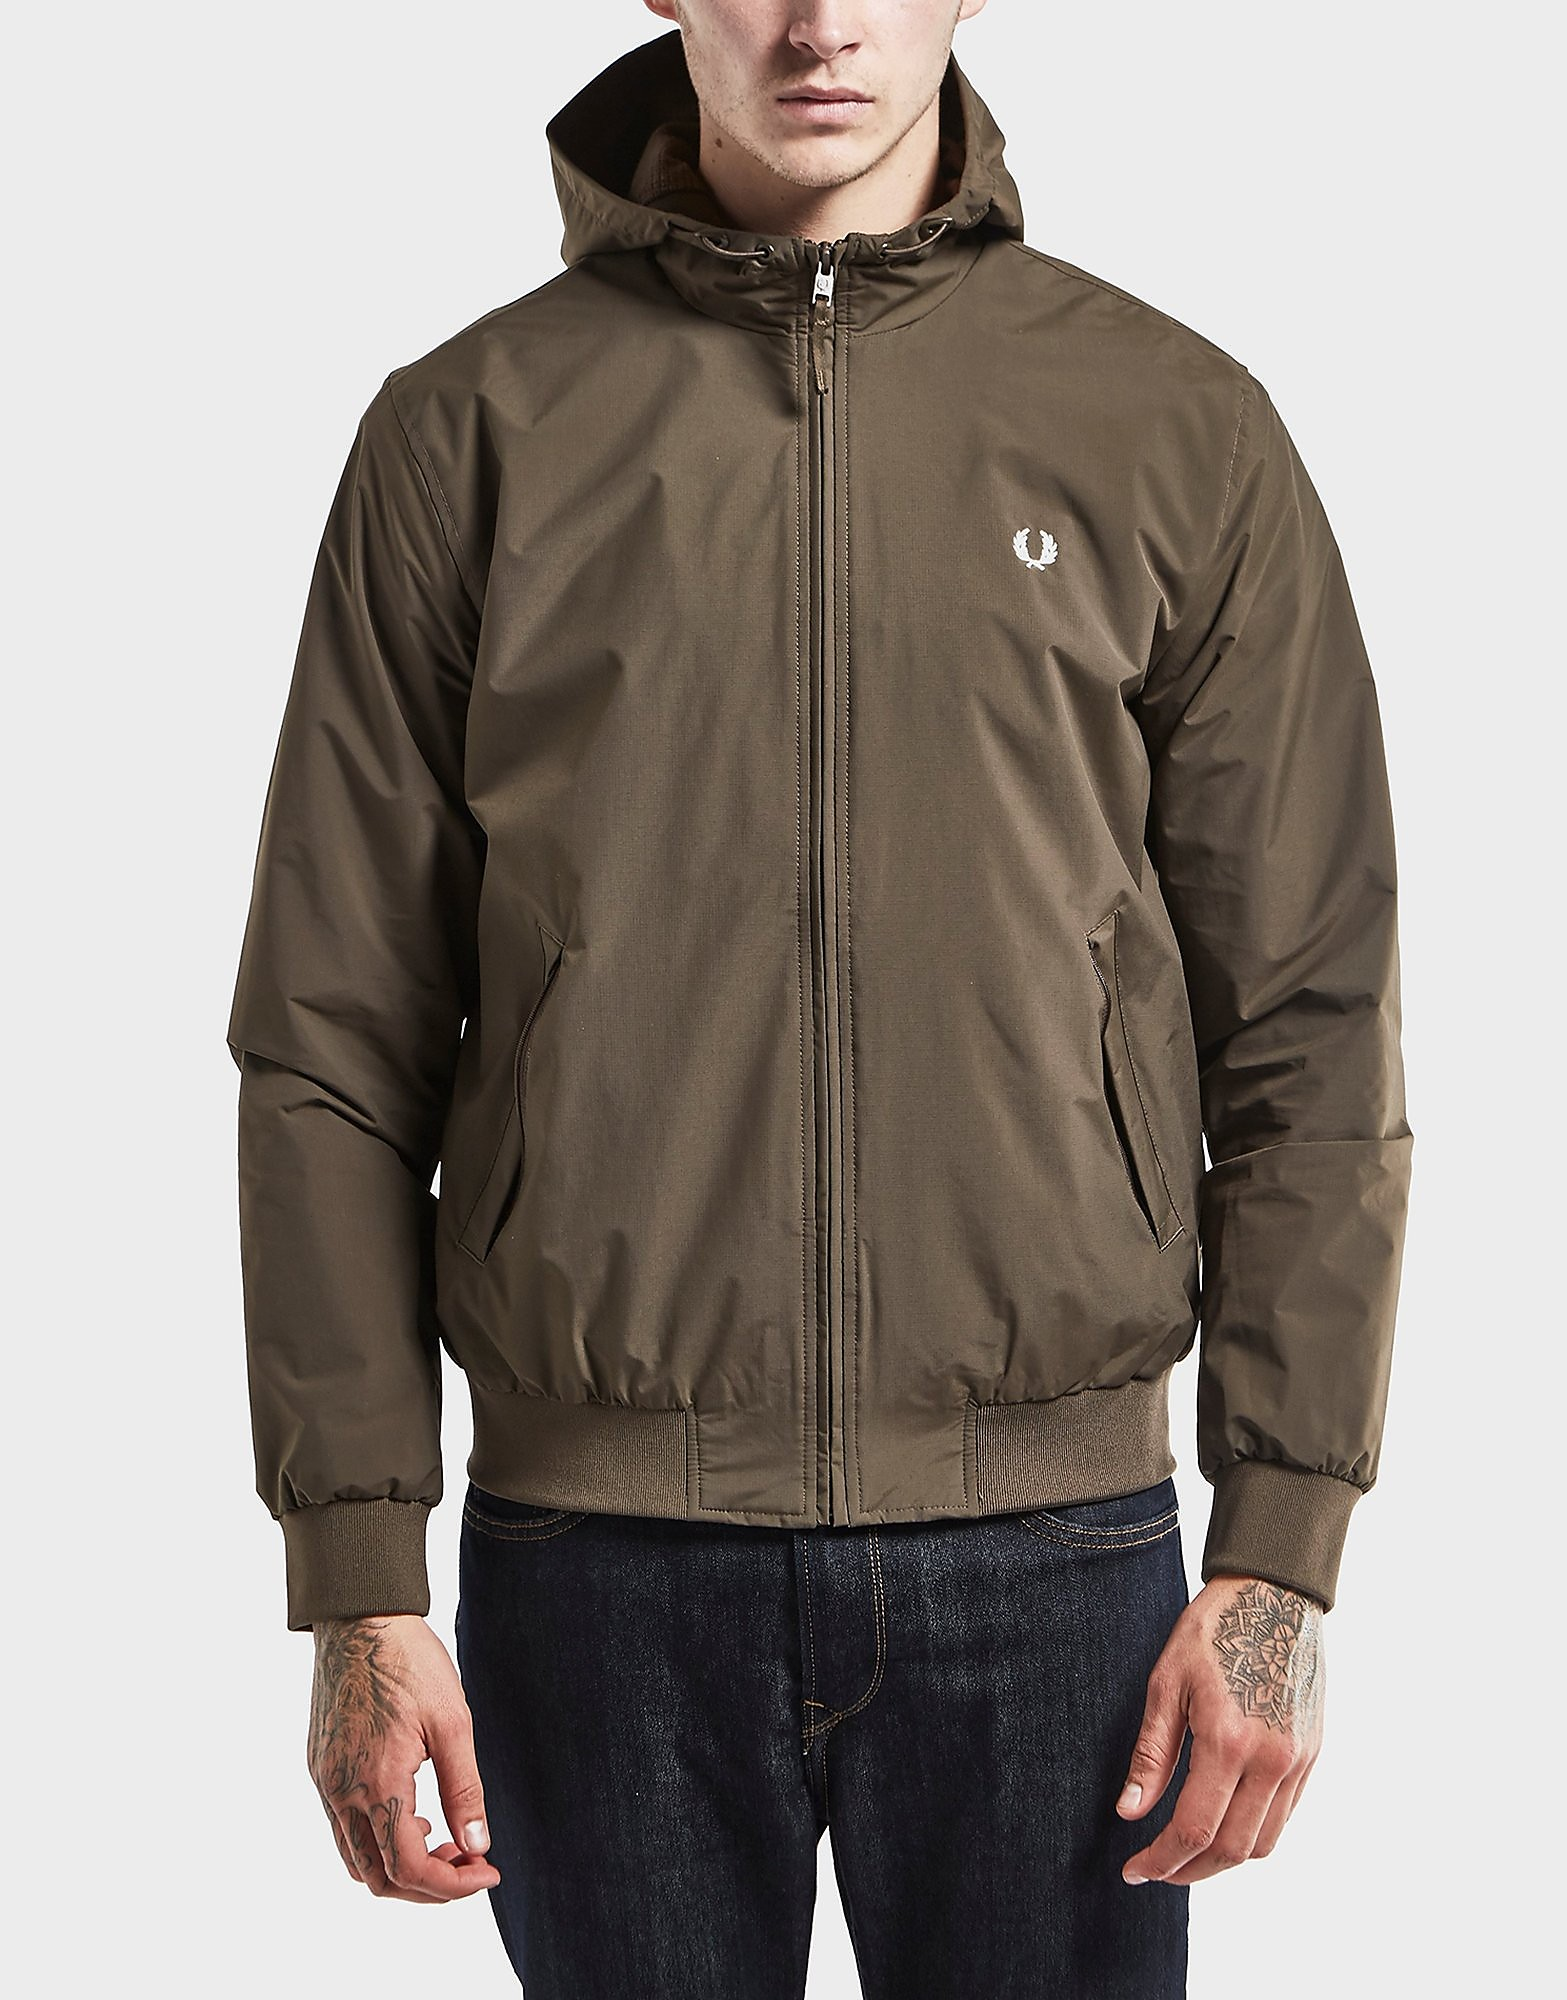 Fred Perry Brentham Hooded Lightweight Jacket - Exclusive